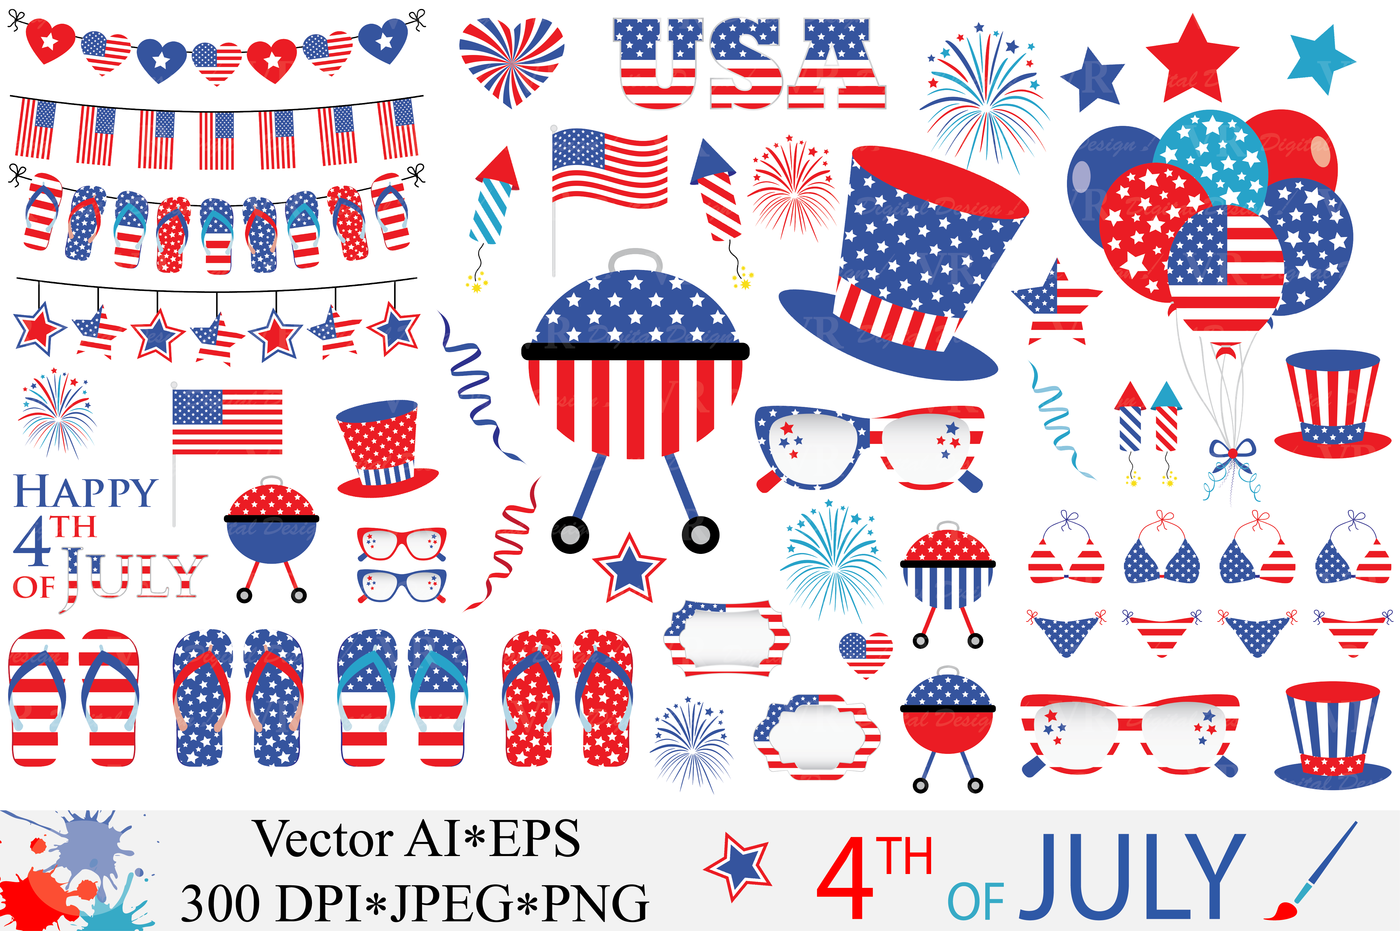 4th Of July Clipart Usa Independence Day Vector Graphics By Vr